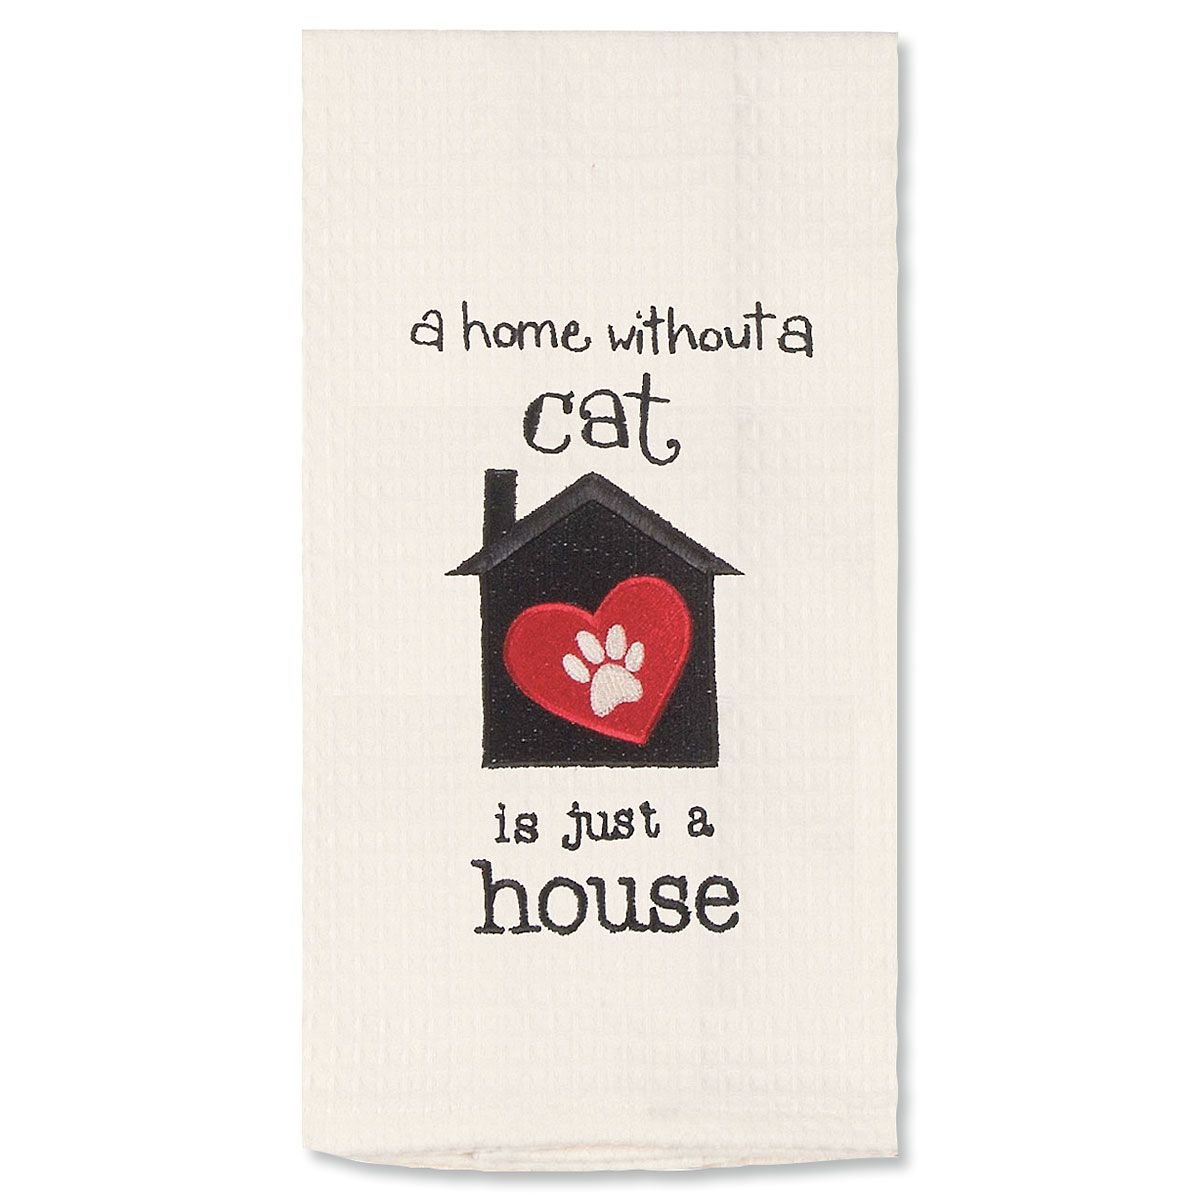 Embroidered Pet Waffle Towel - Cat House